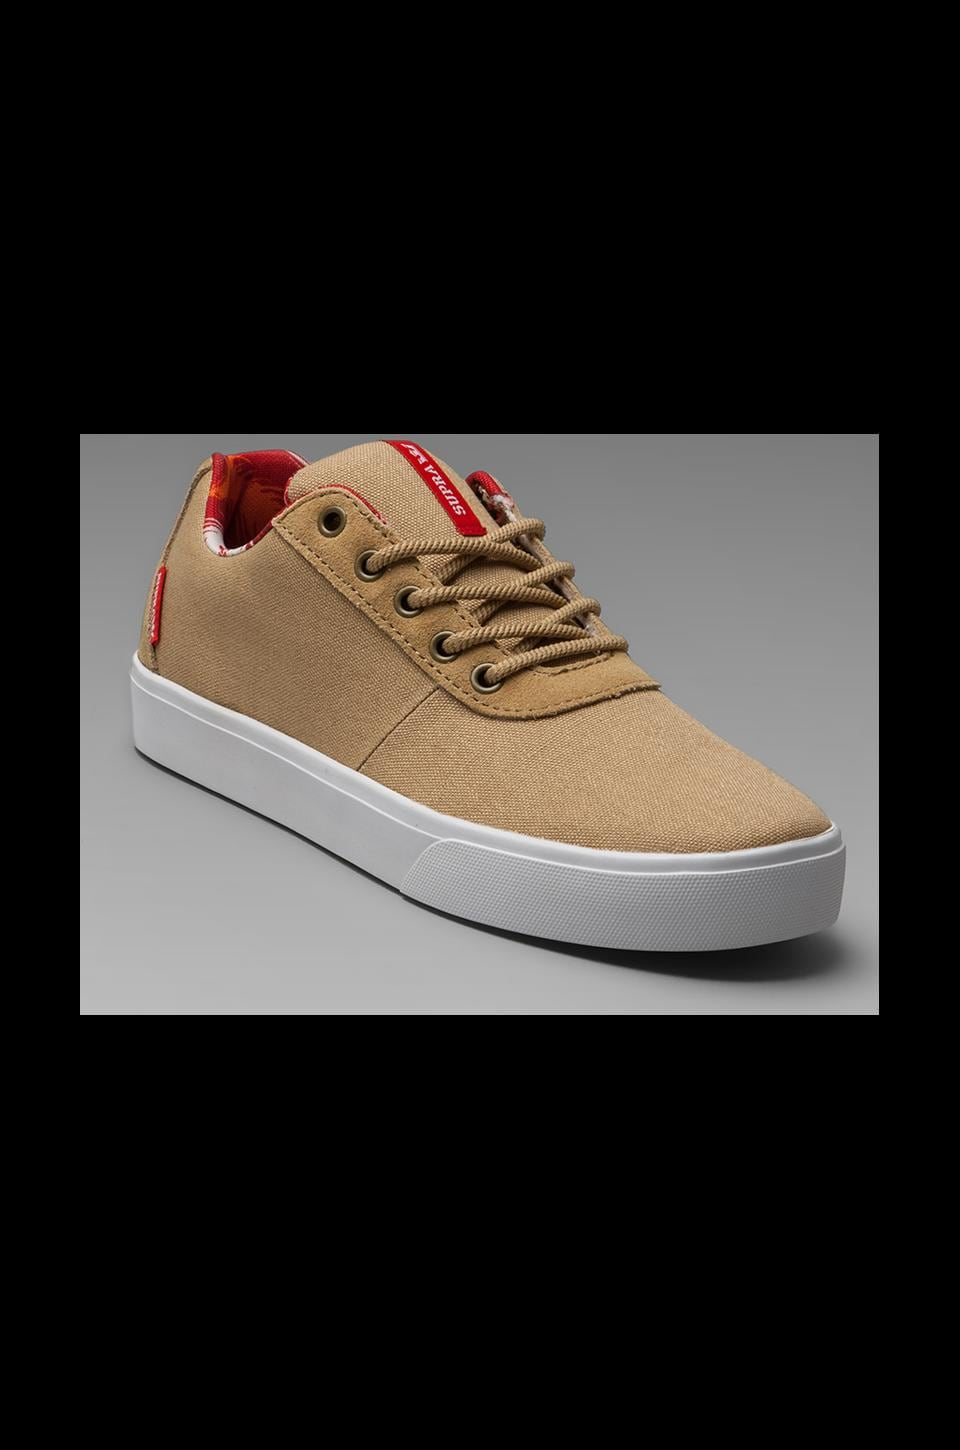 Supra Strike Sneaker in Tan